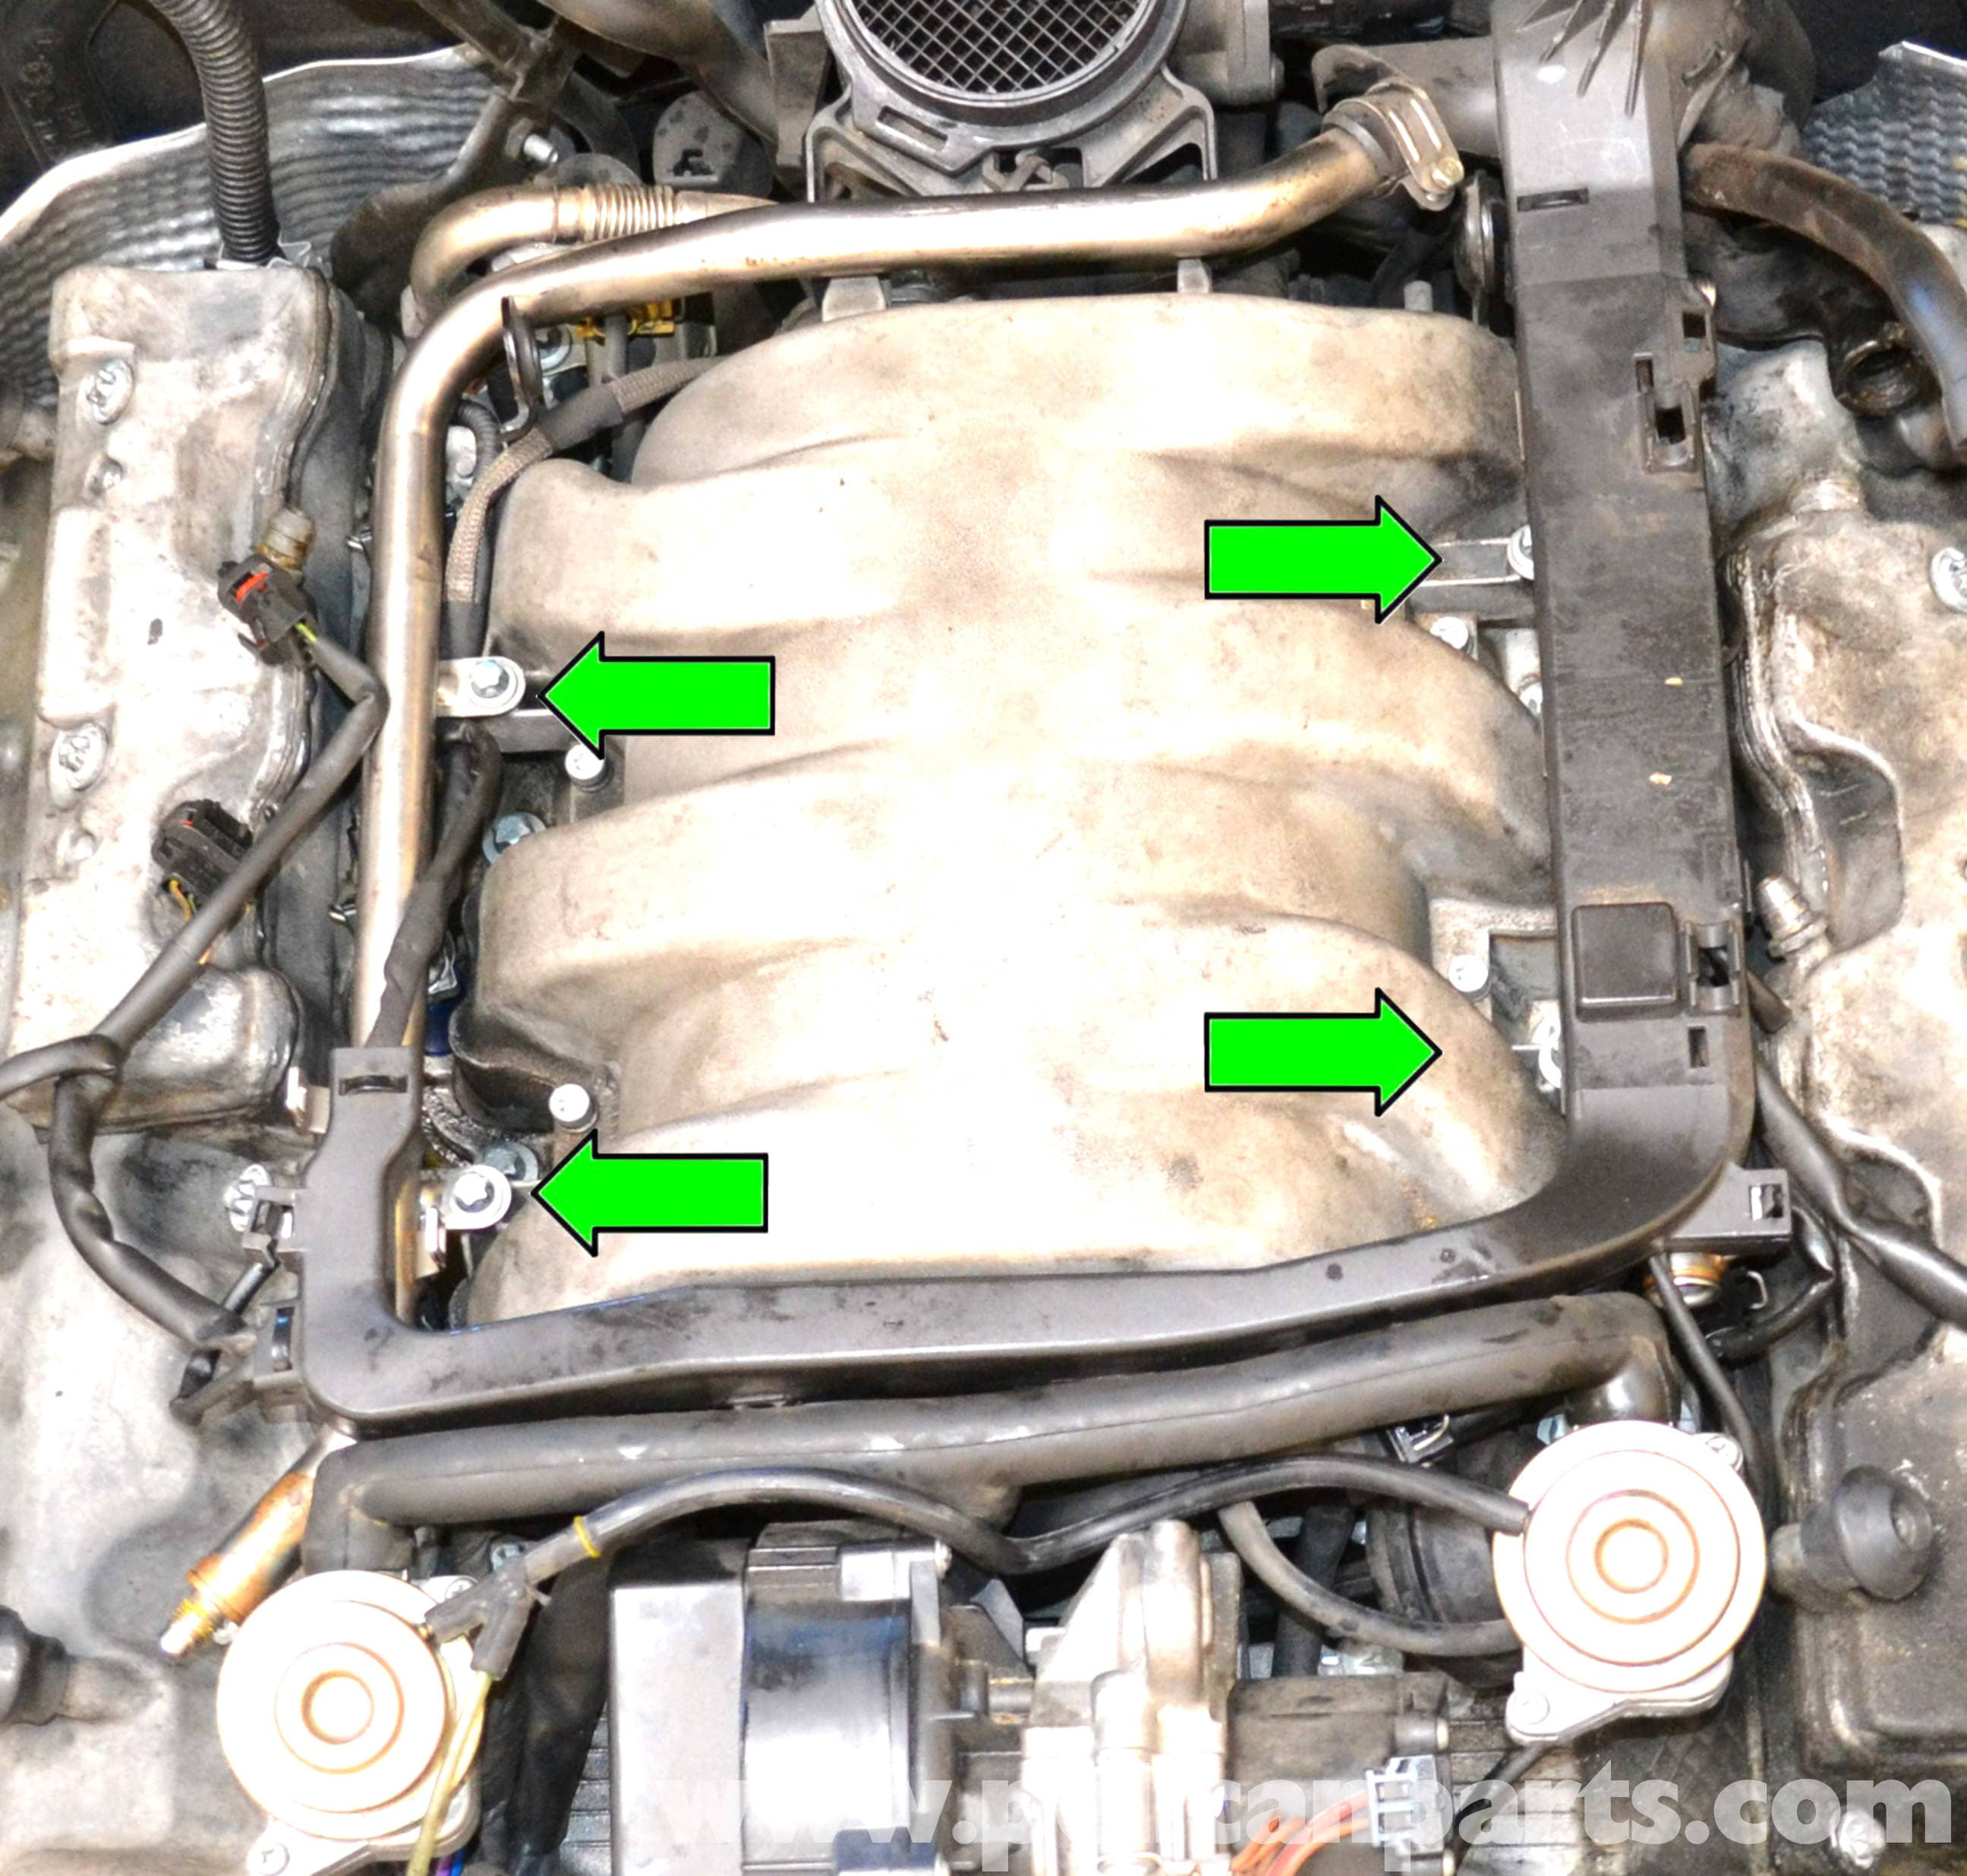 Mercedes-Benz W203 Fuel Injector Replacement - (2001-2007